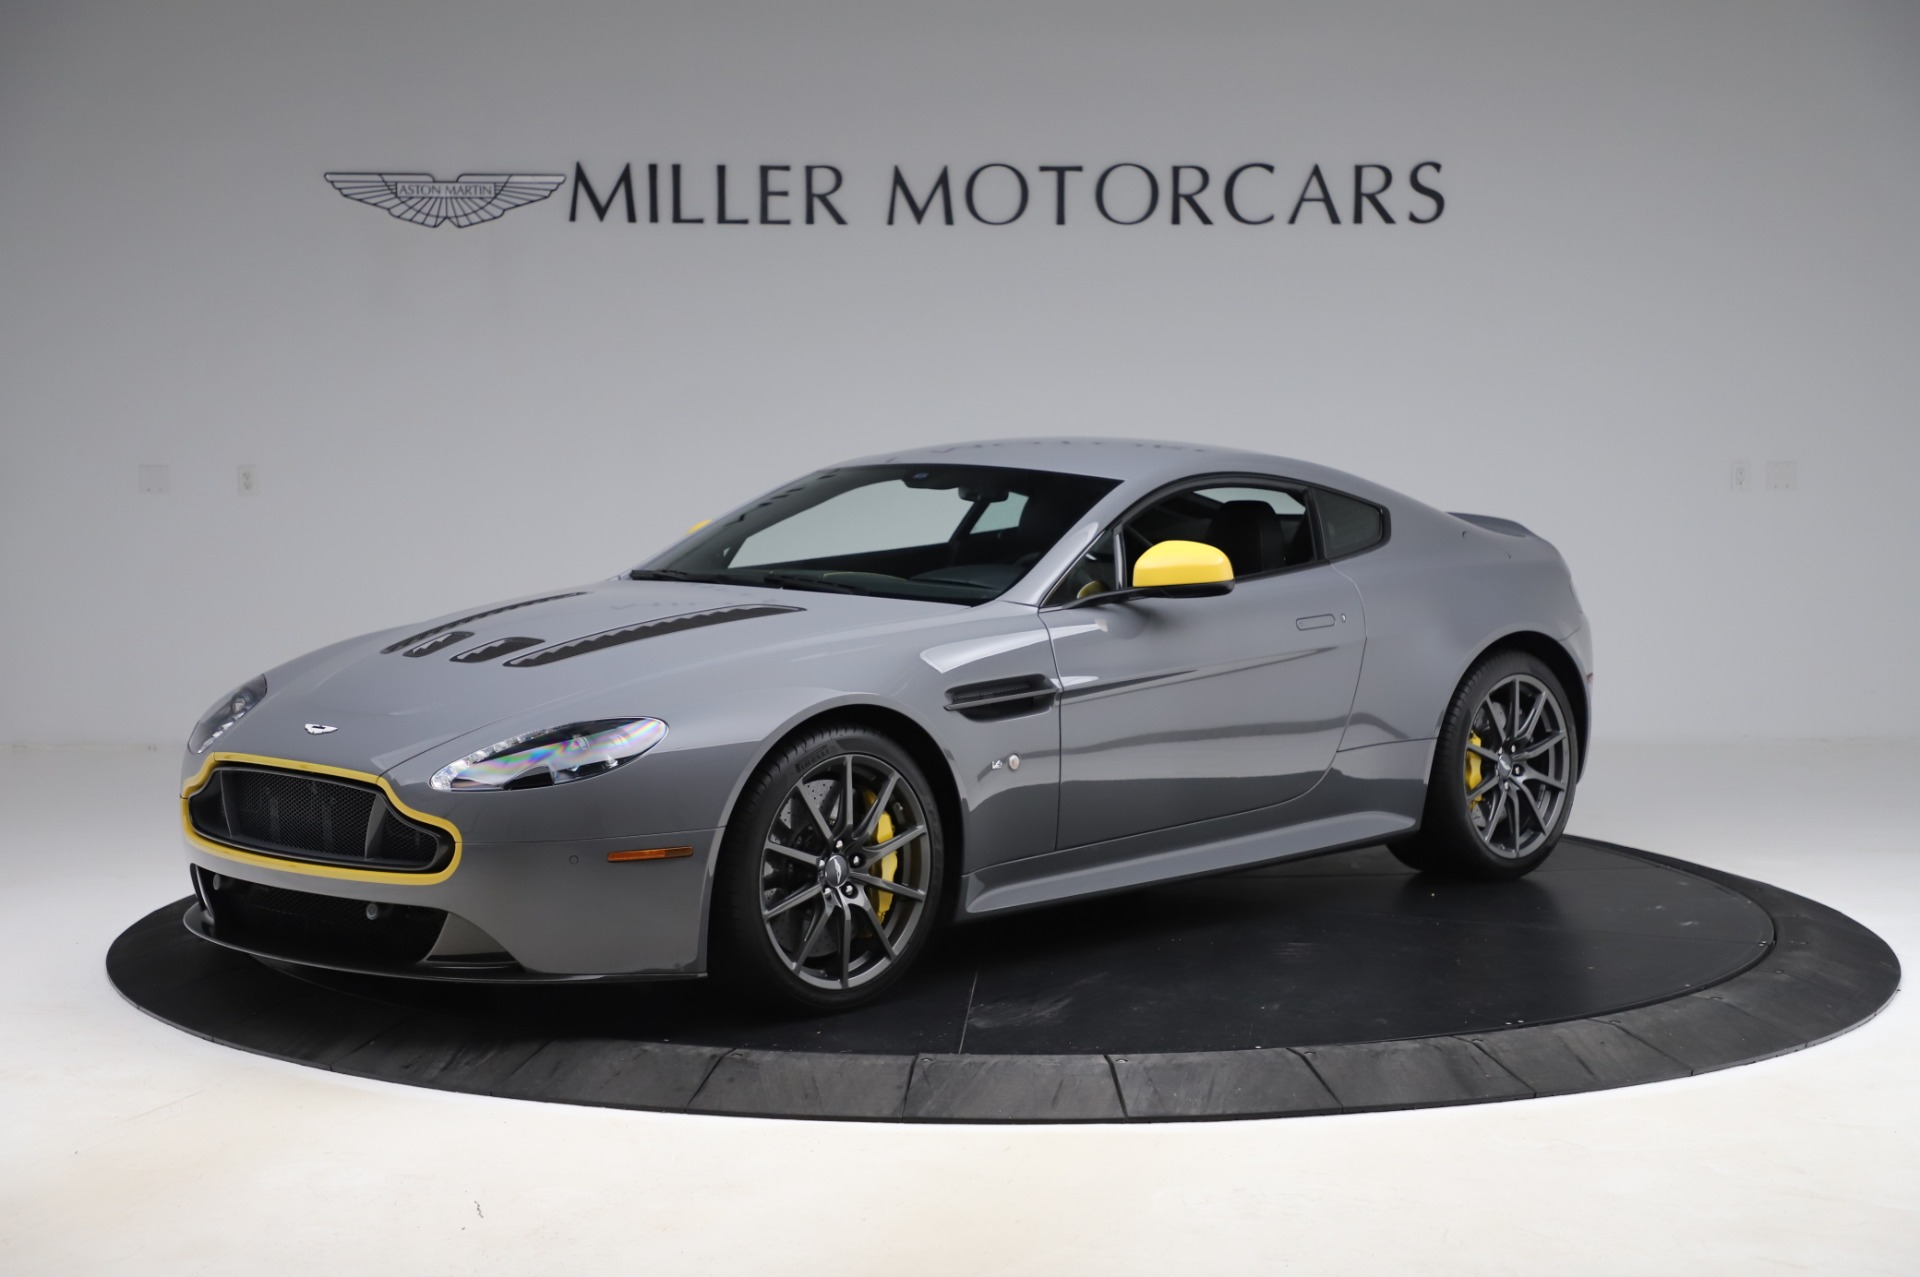 Used 2017 Aston Martin V12 Vantage S for sale $185,900 at Rolls-Royce Motor Cars Greenwich in Greenwich CT 06830 1